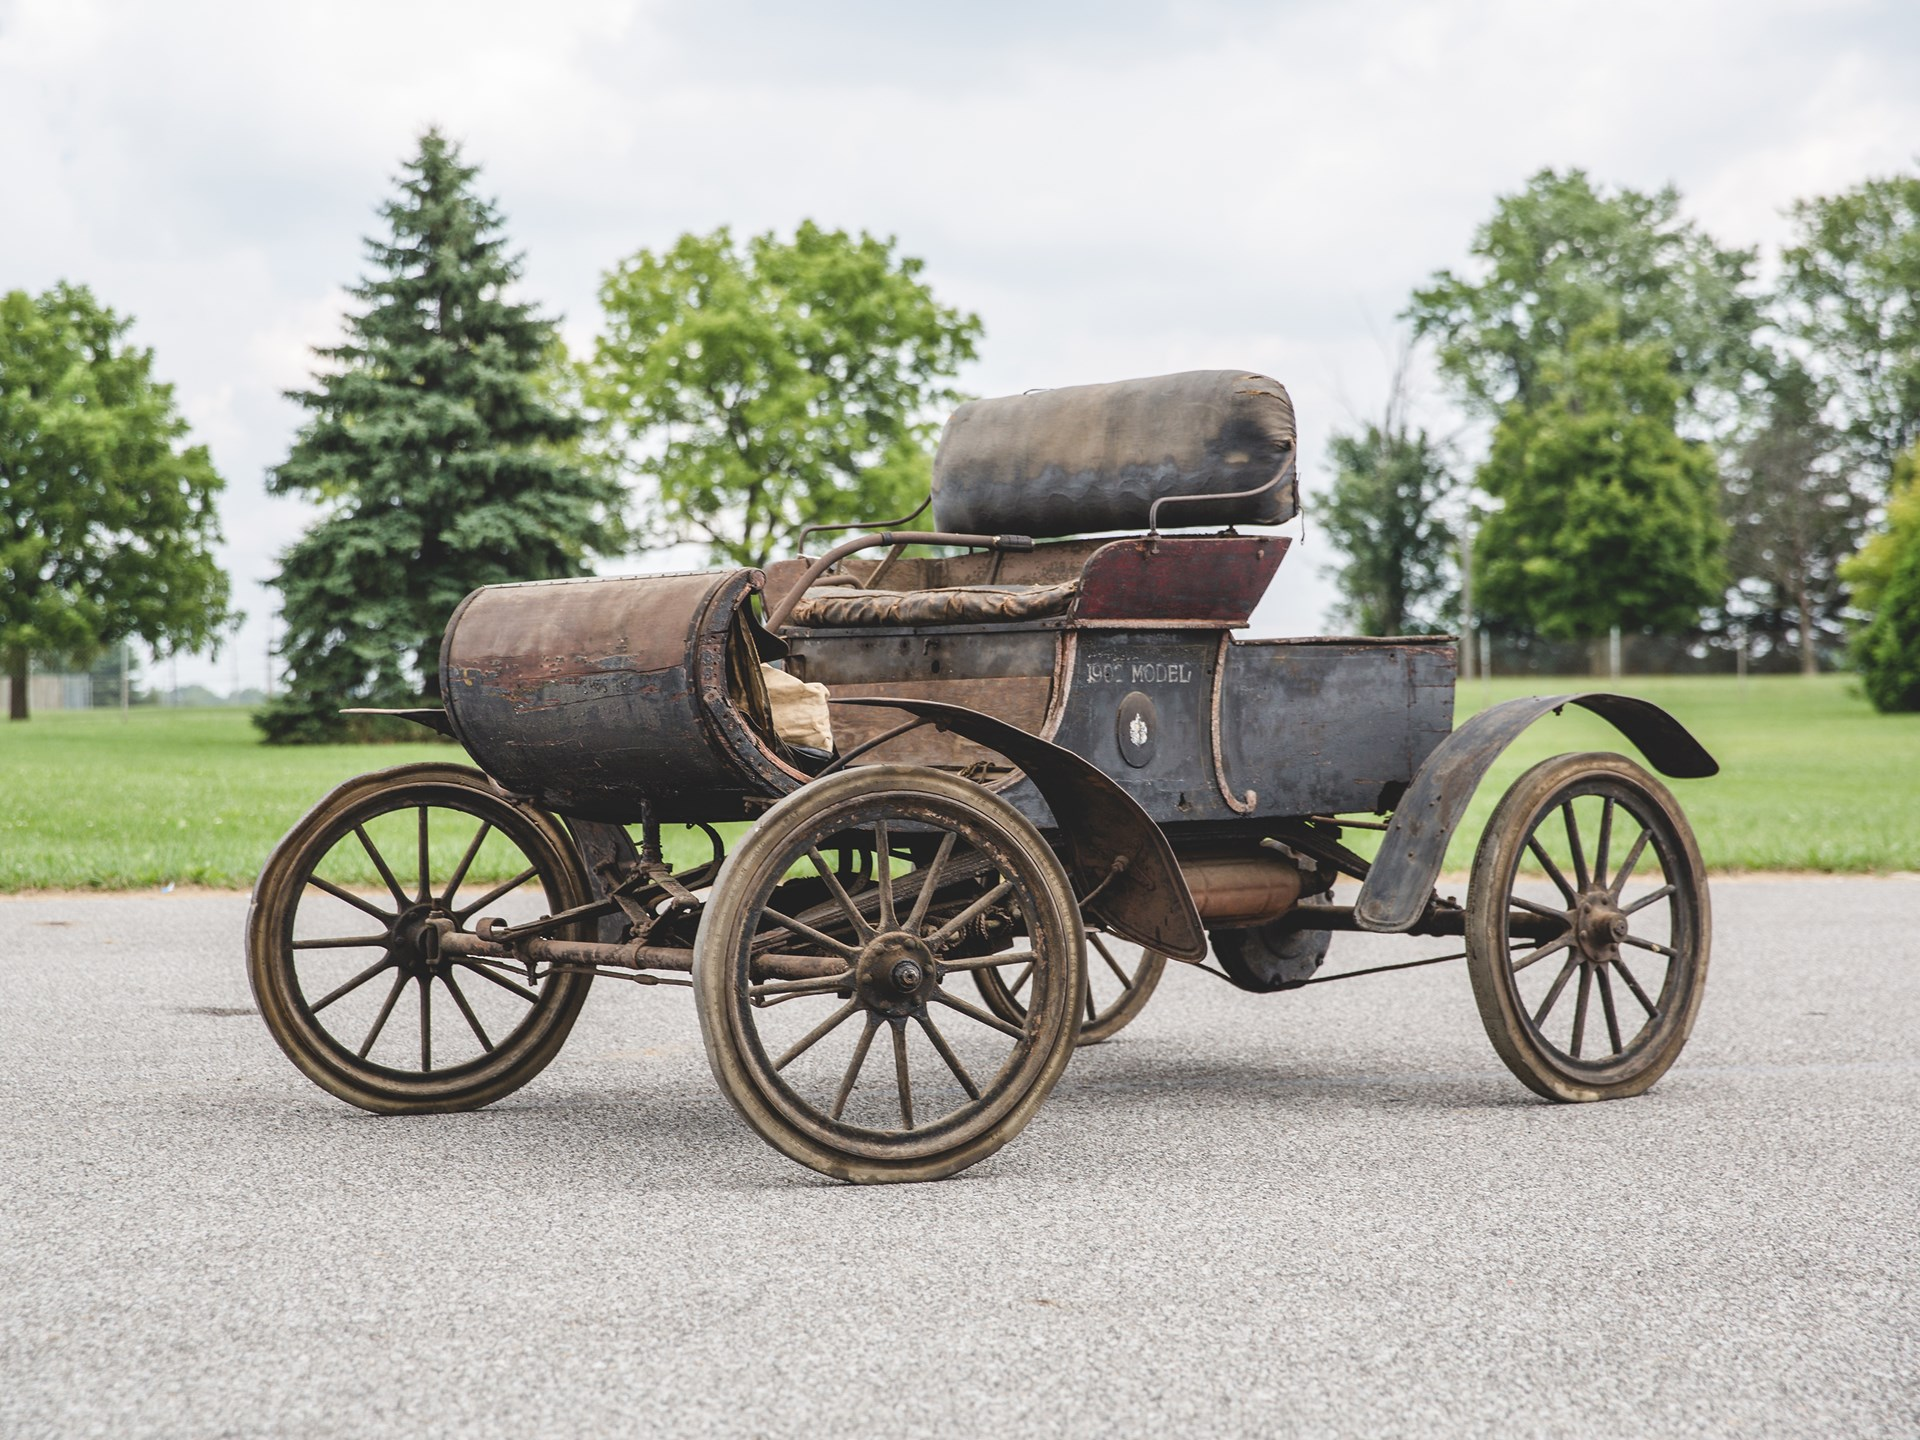 1903 Oldsmobile Model R 'Curved Dash' Runabout